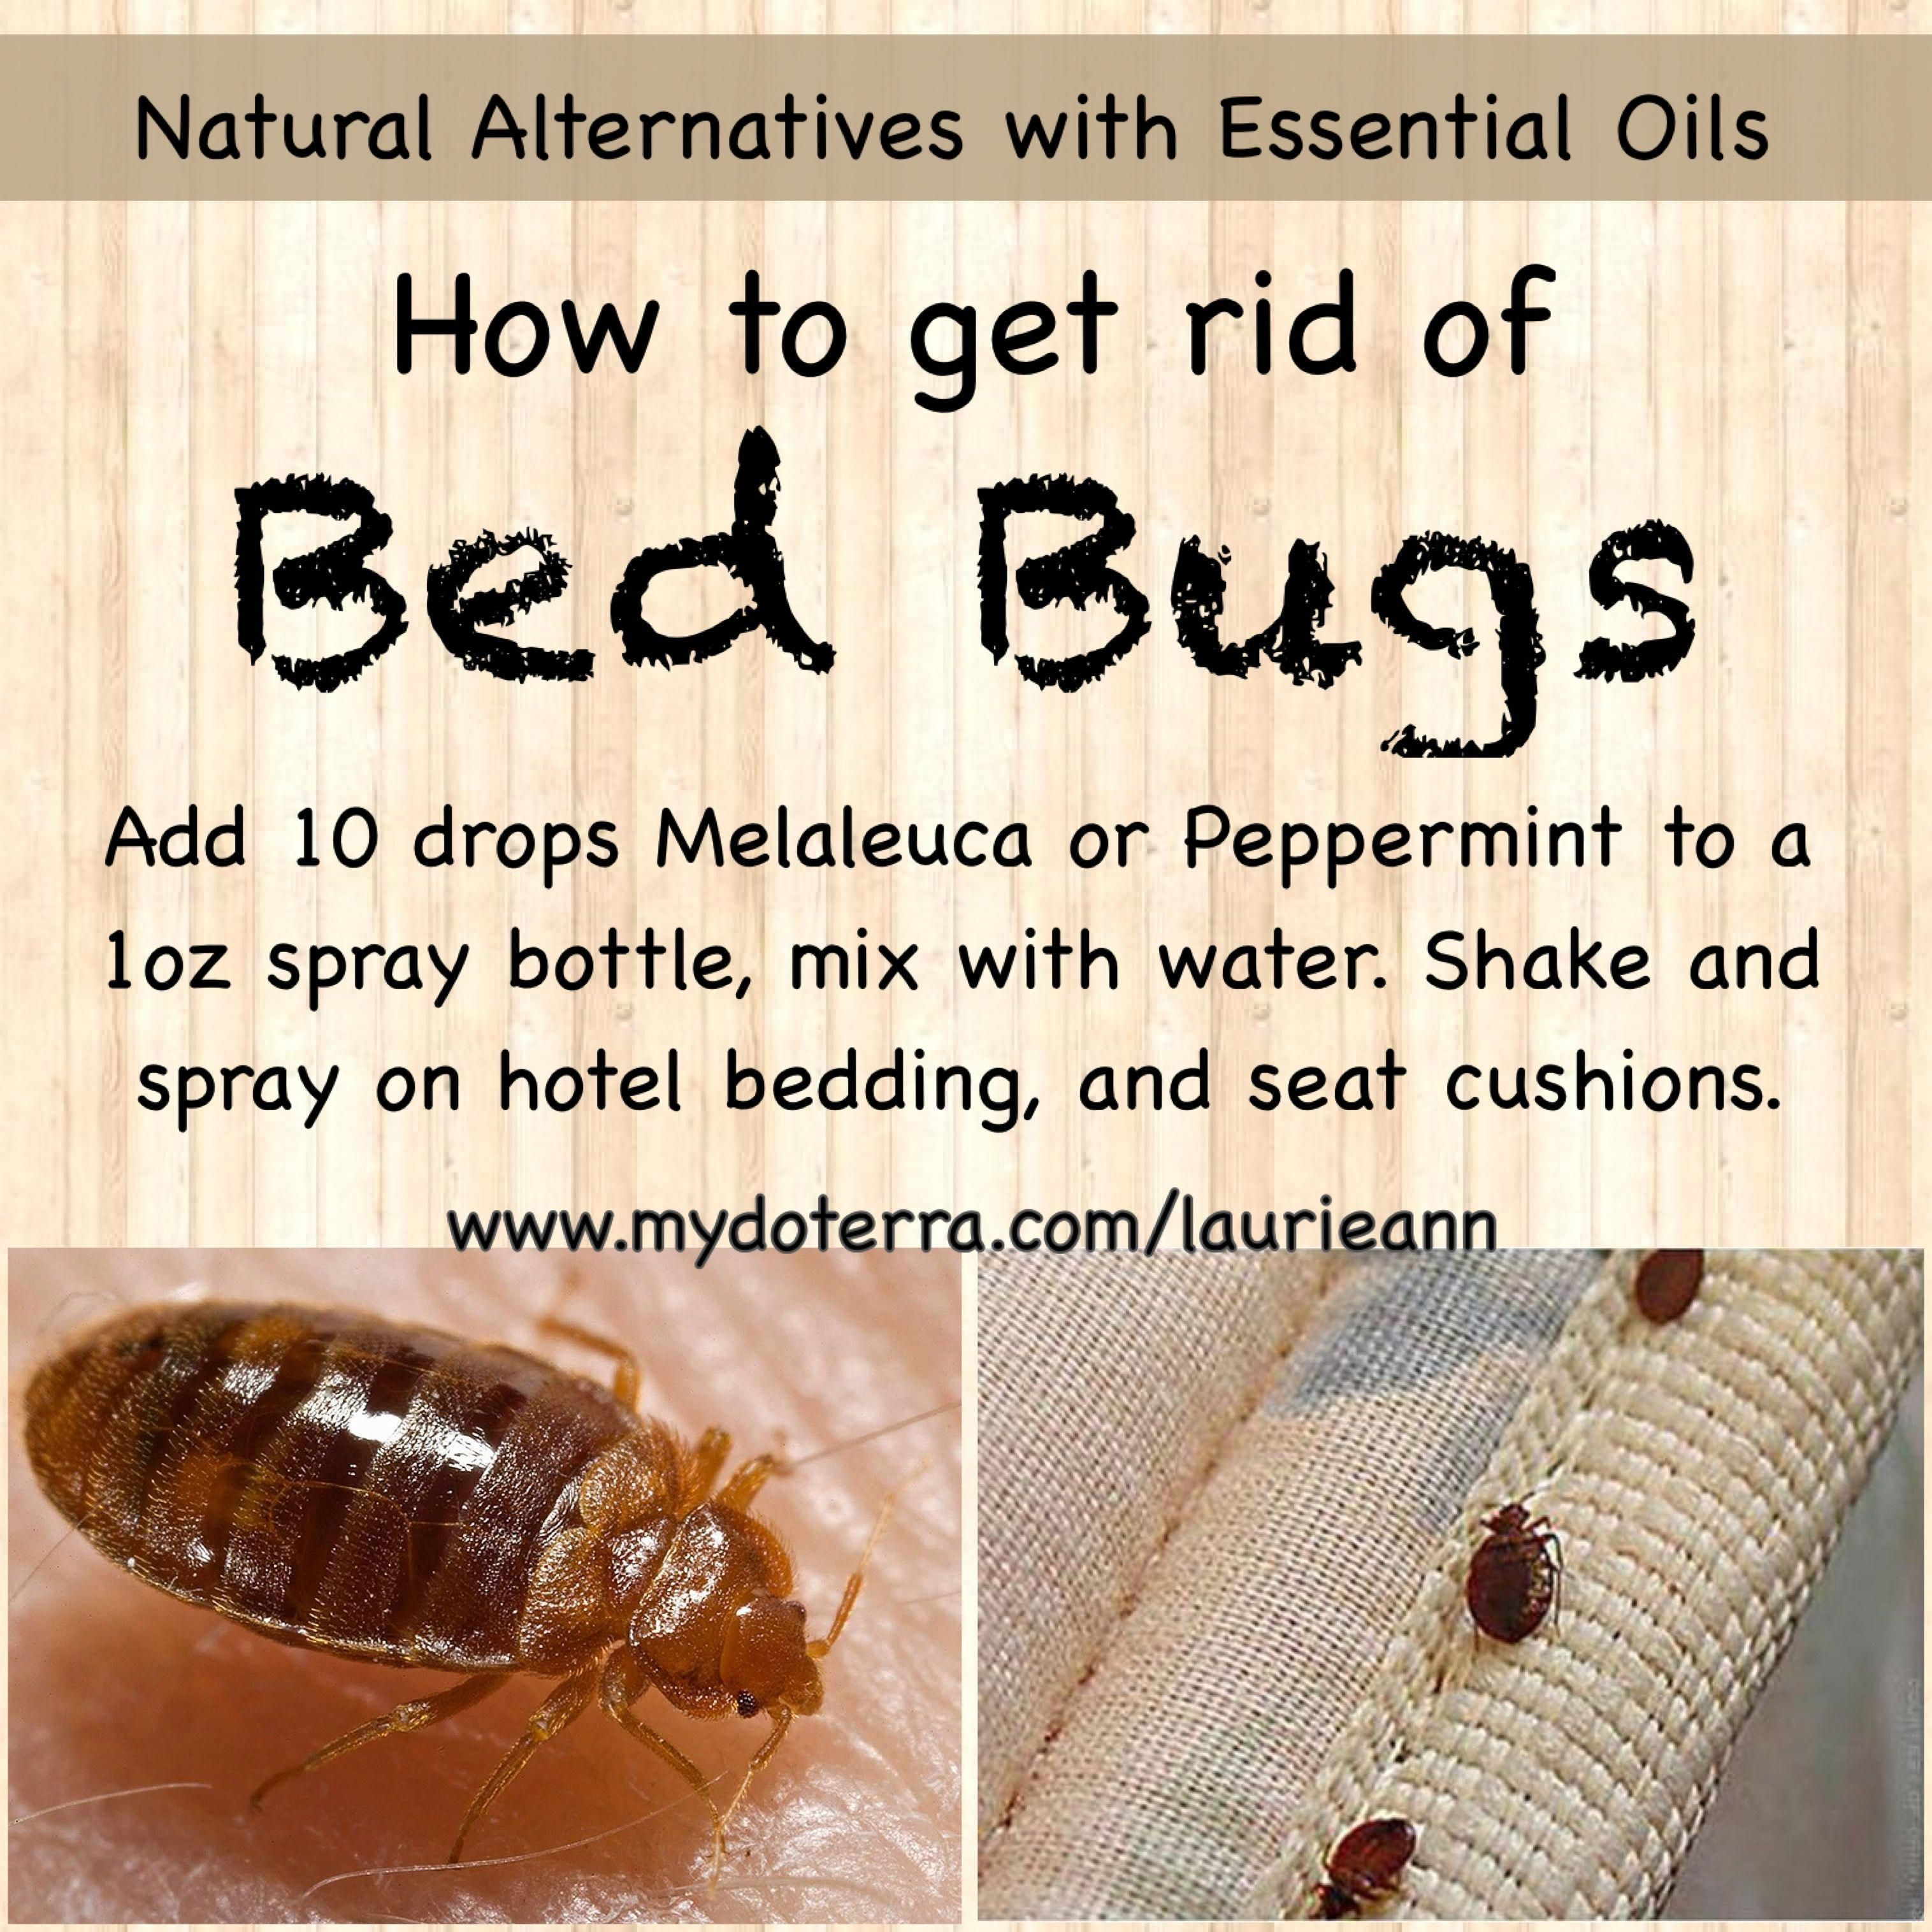 Carpet Runner Next Day Delivery Id 7341160134 Bed Bugs Essential Oils Diy Essential Oils Bed Bugs